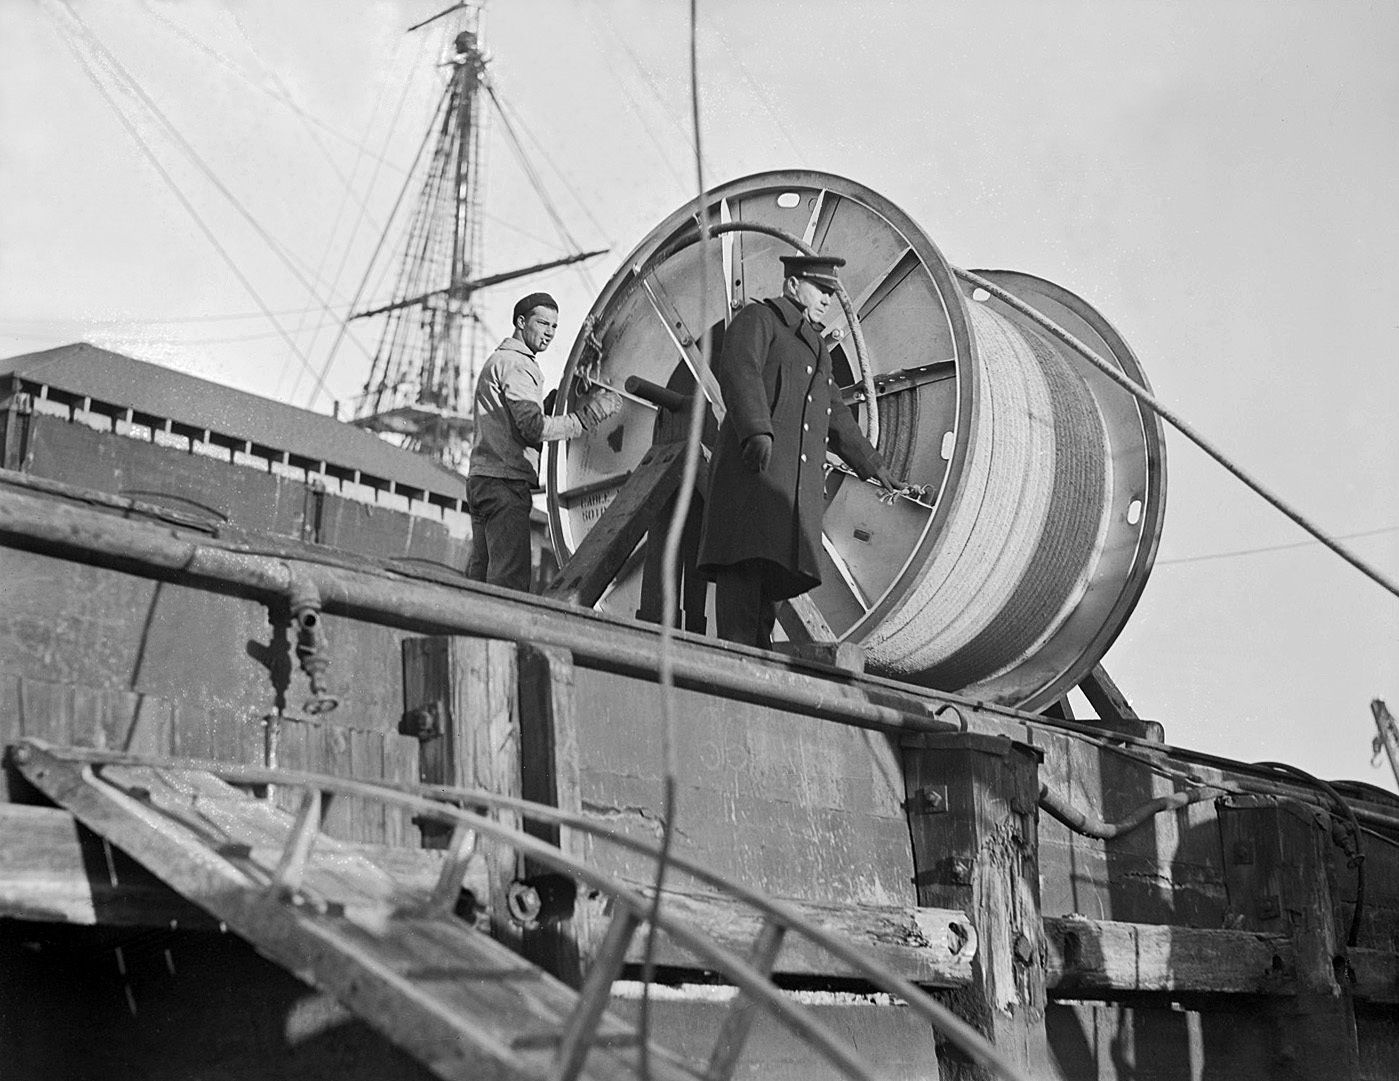 Cable laying, Peqout